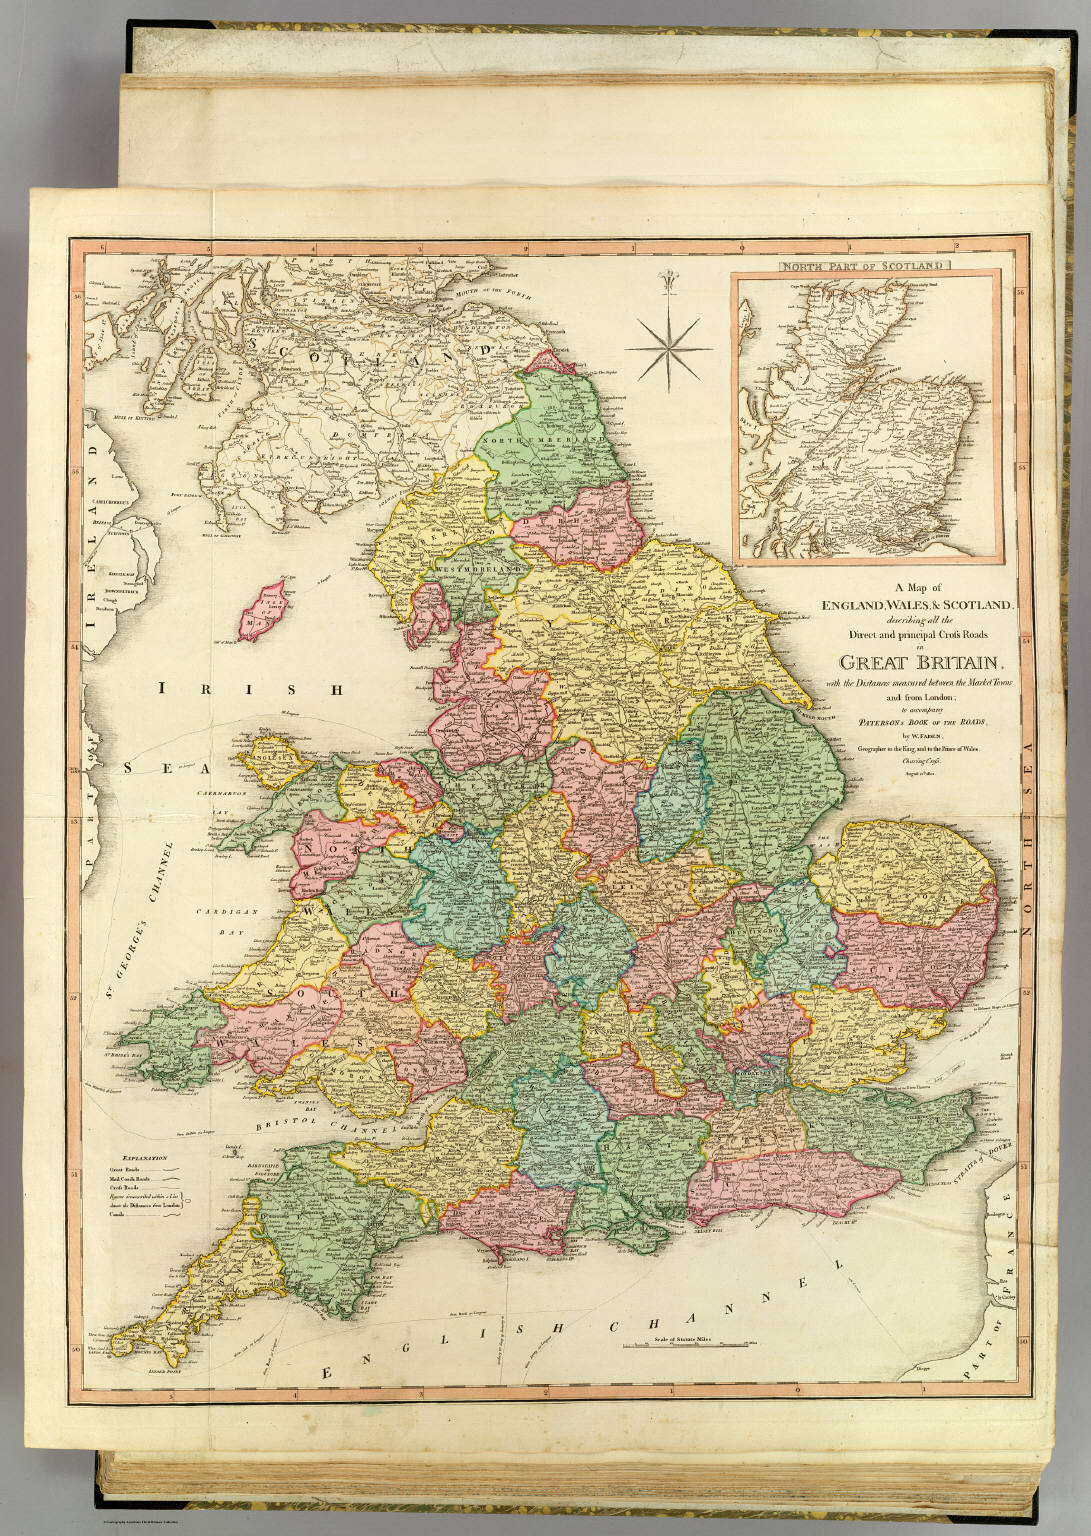 Map Of England Wales Scotland.England Wales Scotland David Rumsey Historical Map Collection